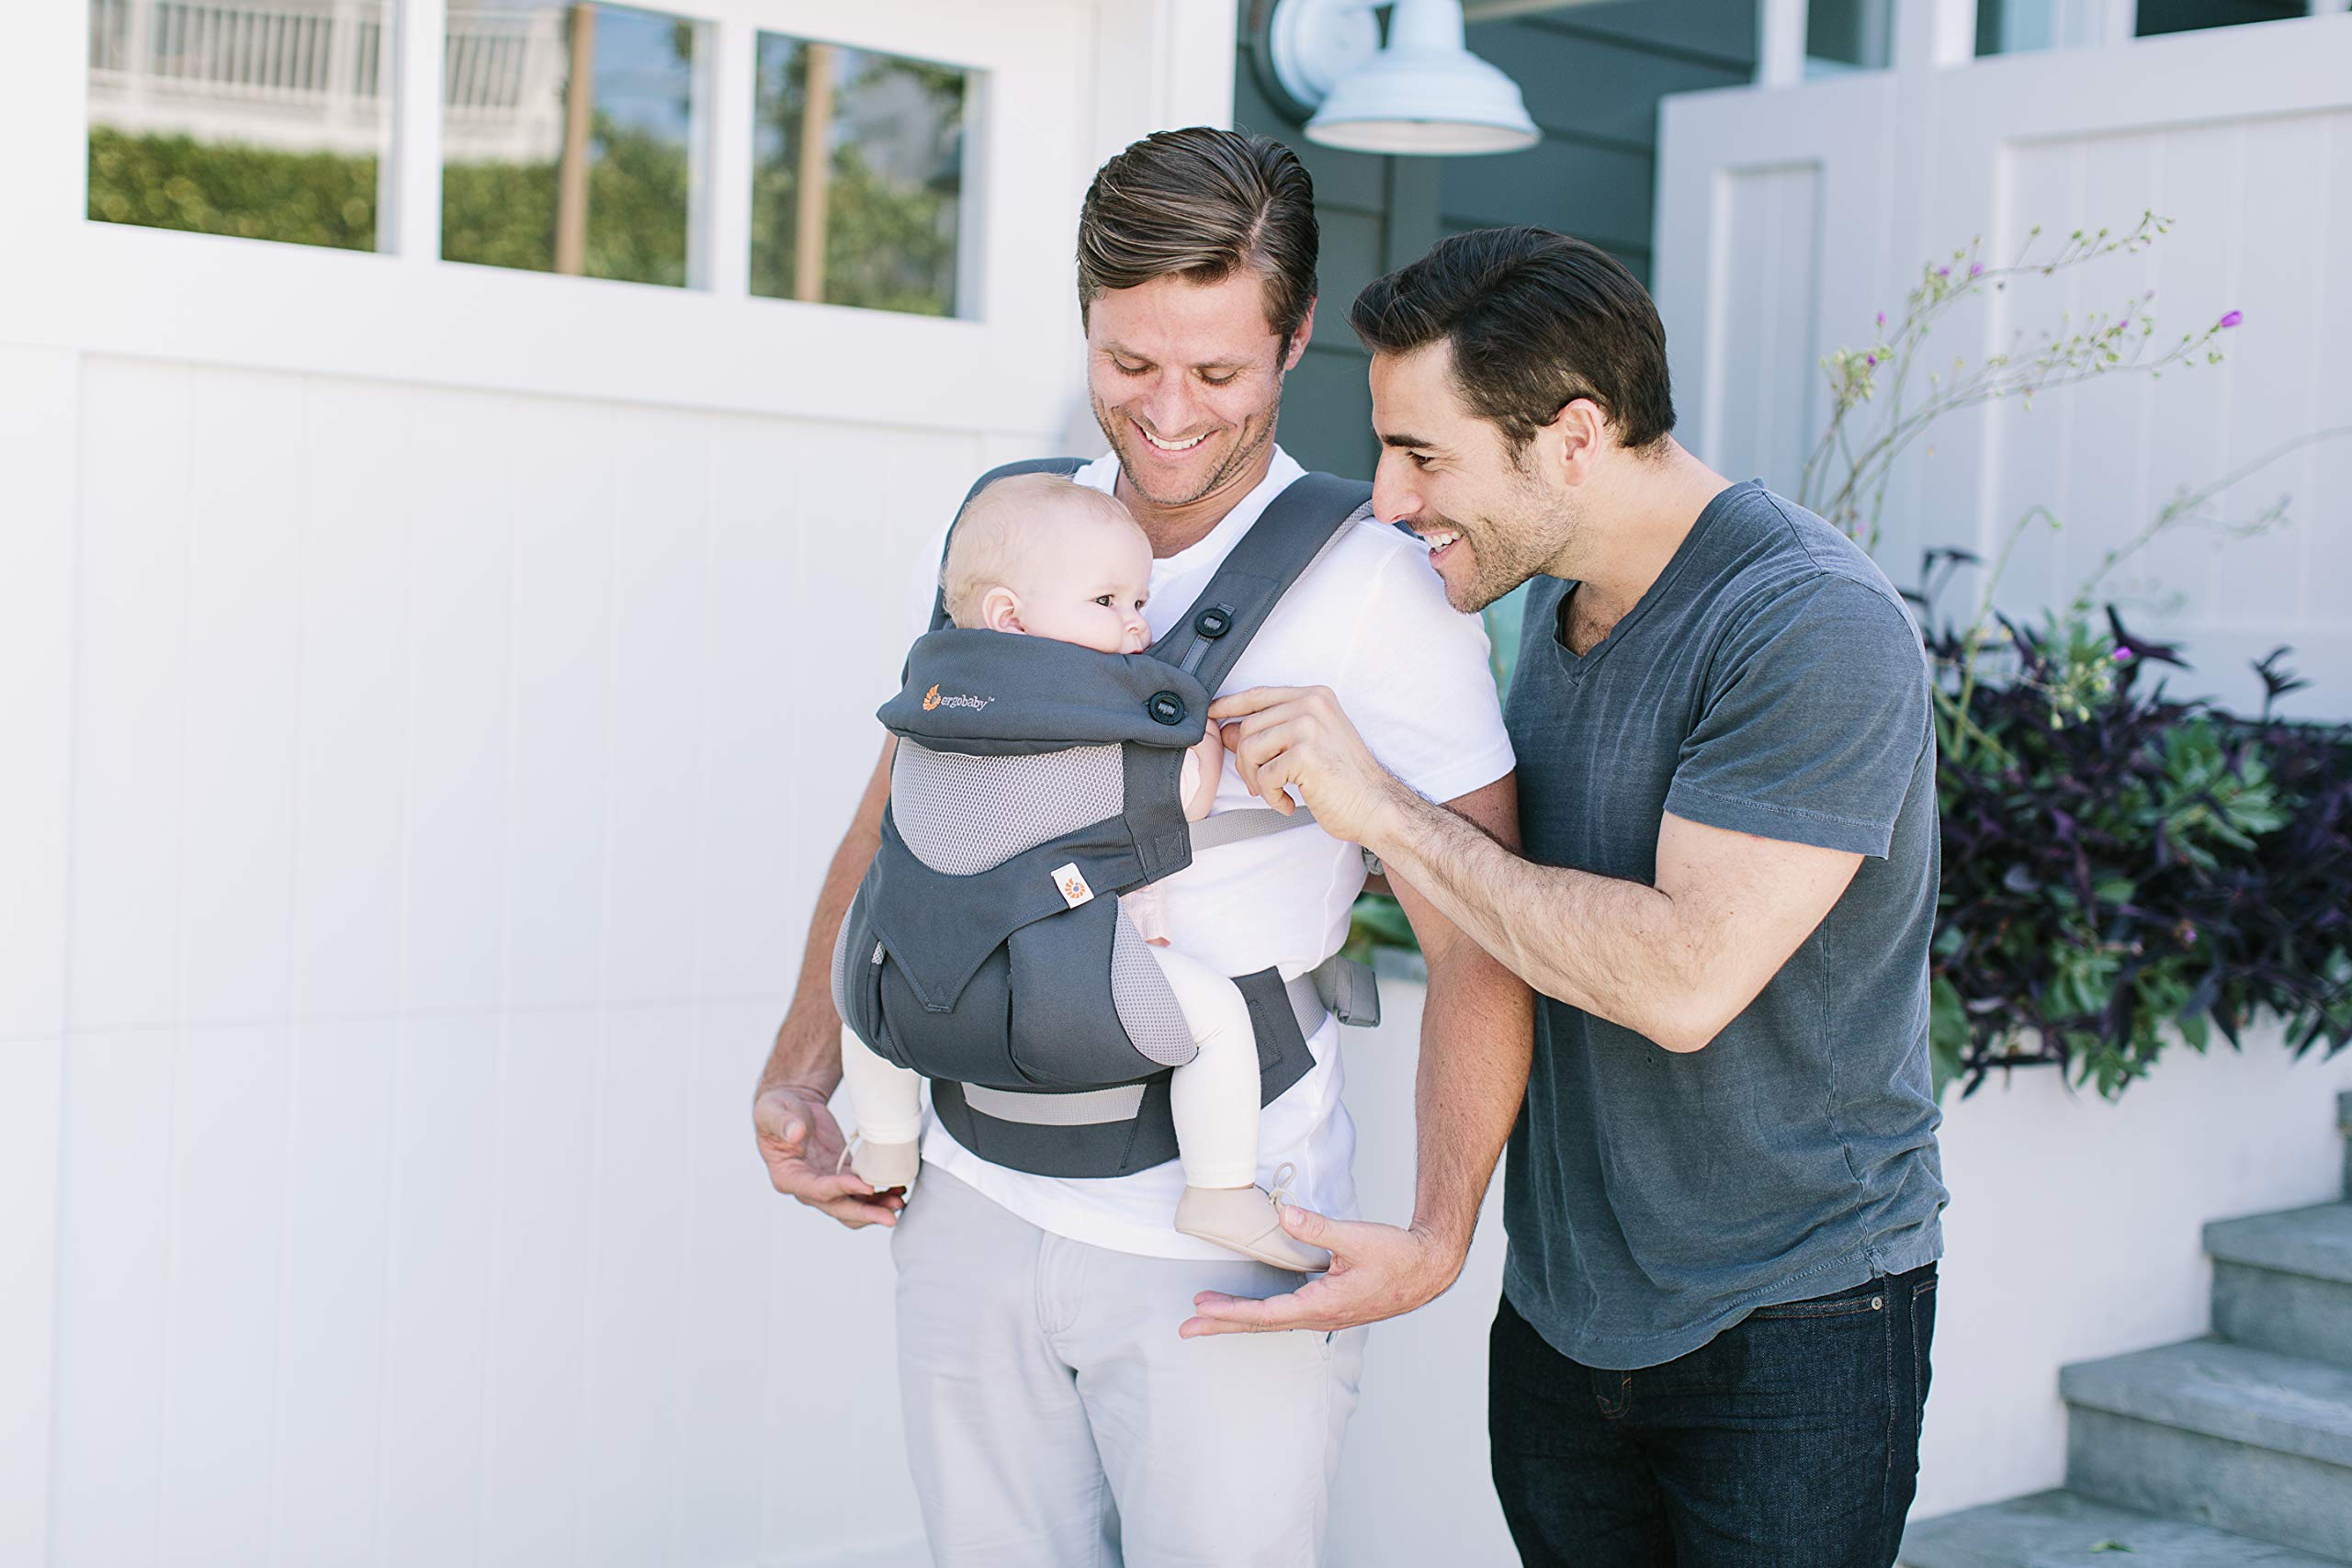 Ergobaby Carrier, 360 All Carry Positions Baby Carrier with Cool Air Mesh, Carbon Grey by Ergobaby (Image #7)